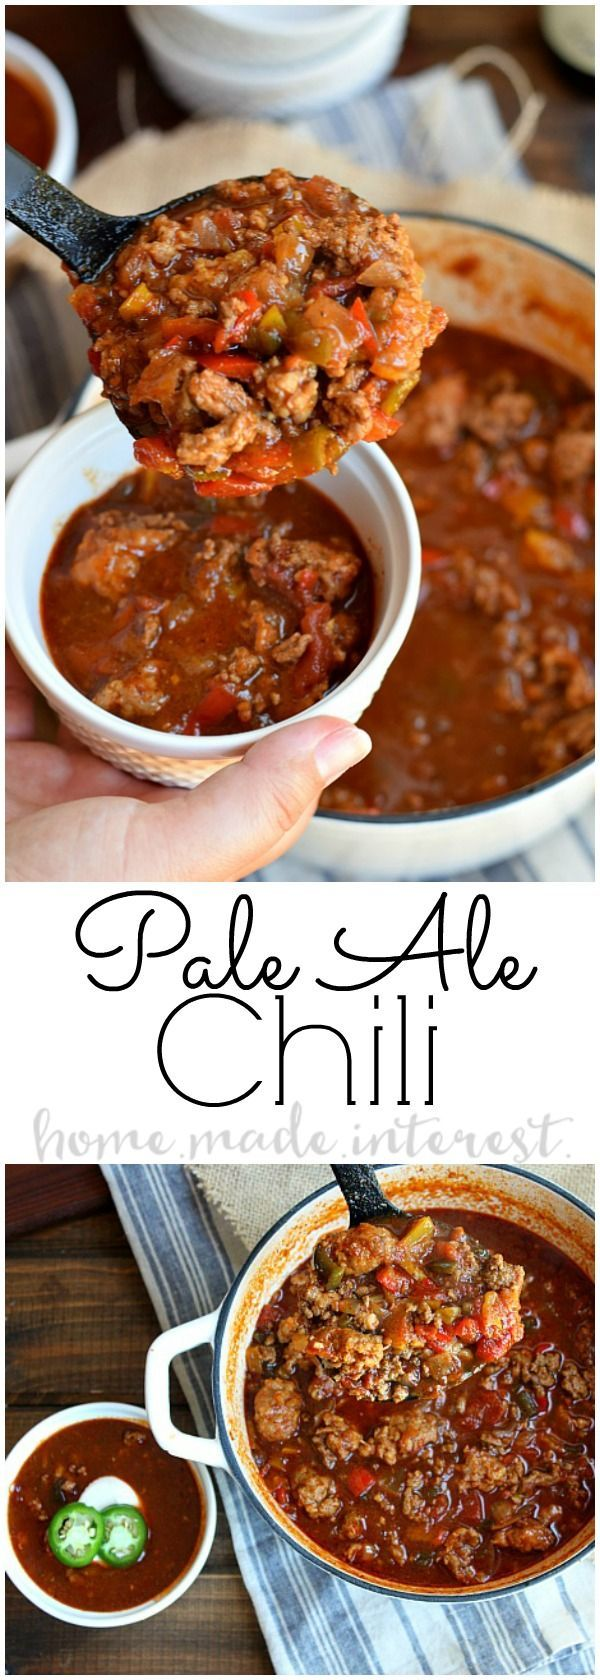 Easy Chili Recipe Made With Pale Ale Beer Not Made In The